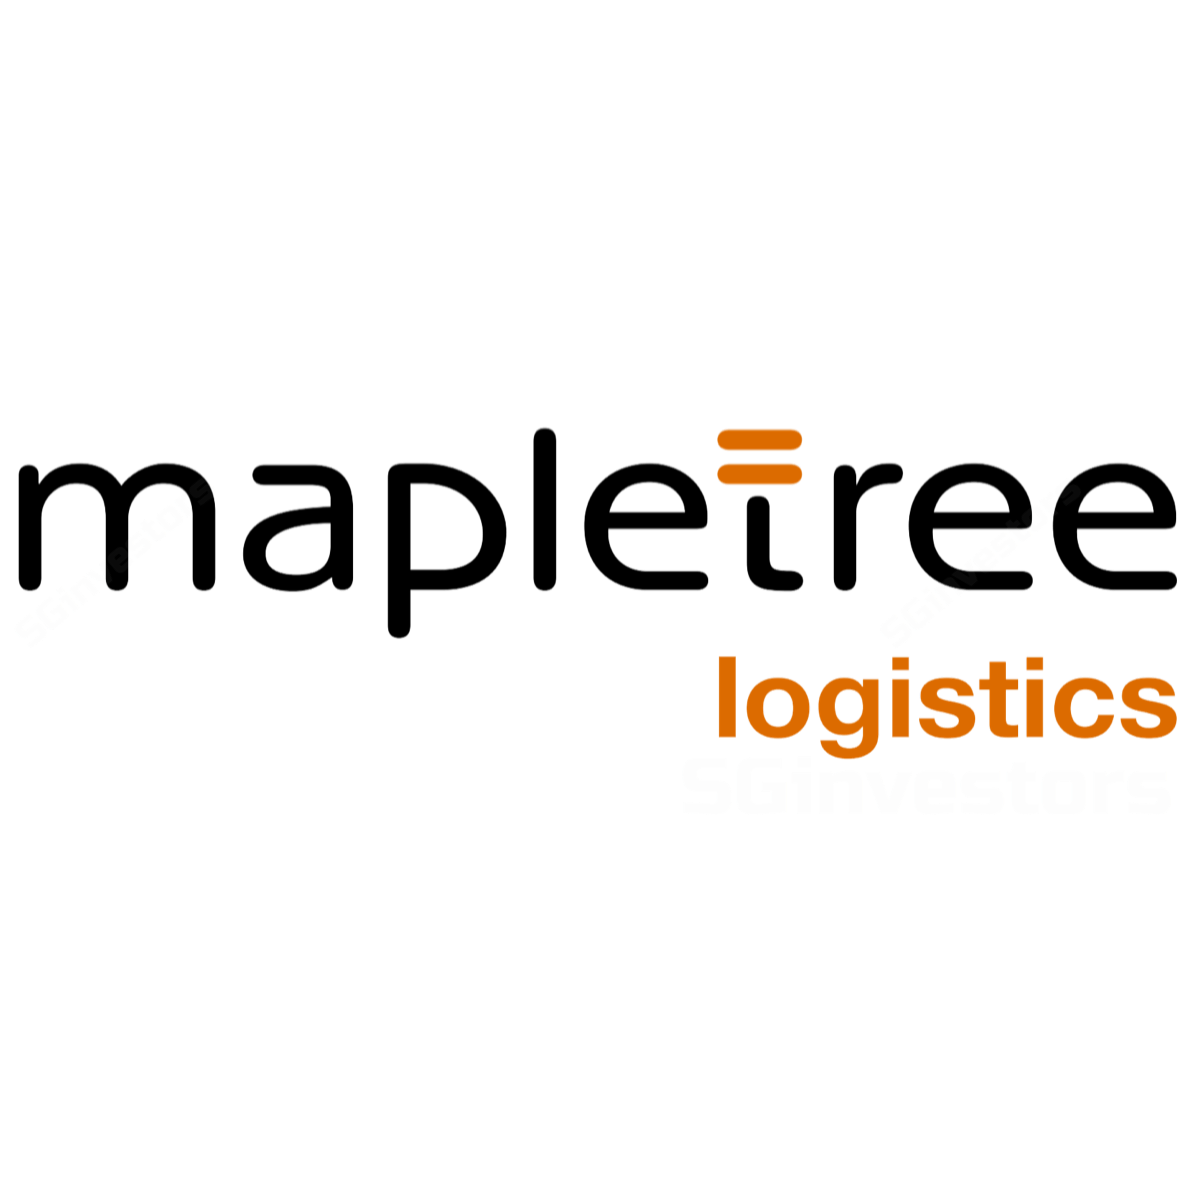 Mapletree Logistics Trust - DBS Vickers 2018-01-24: Spreading Its Wings